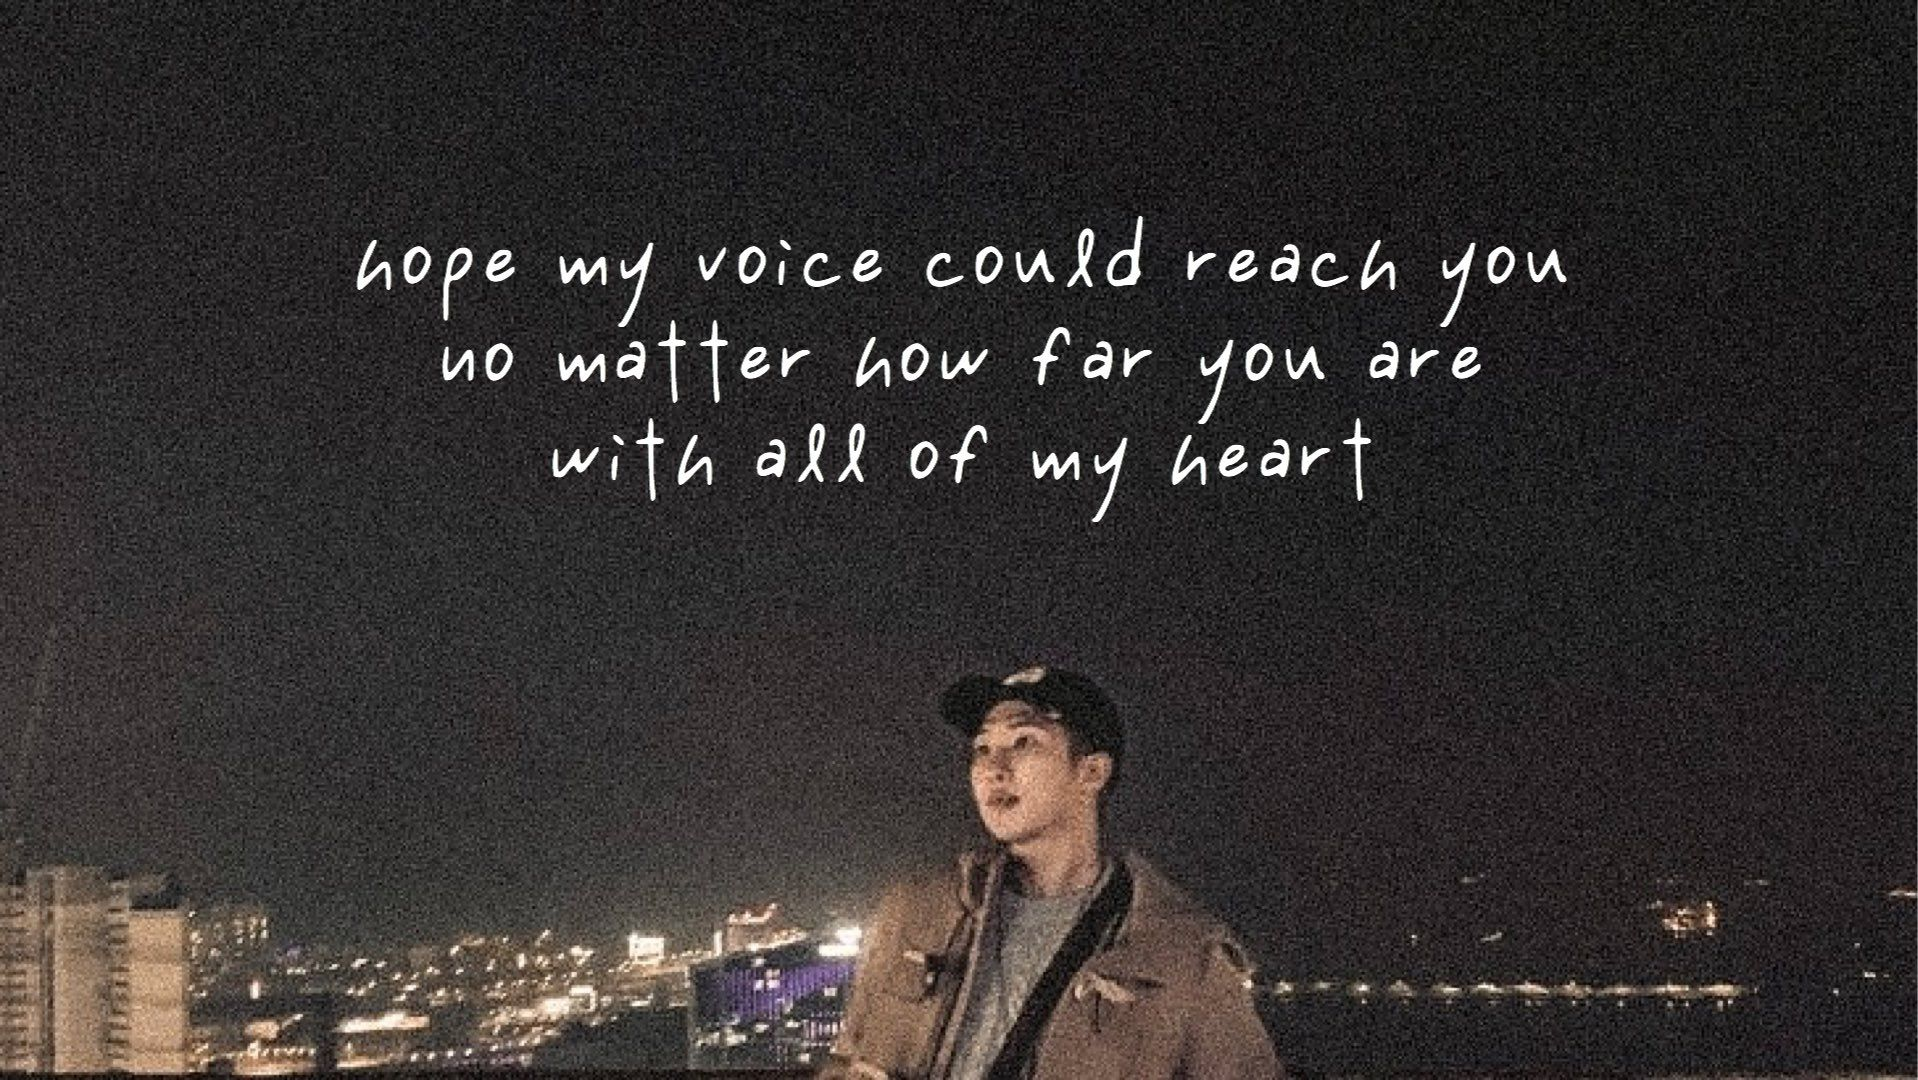 Coco On Twitter Bts Lyrics Quotes Bts Quotes Healing Quotes Bts quotes laptop wallpaper hd